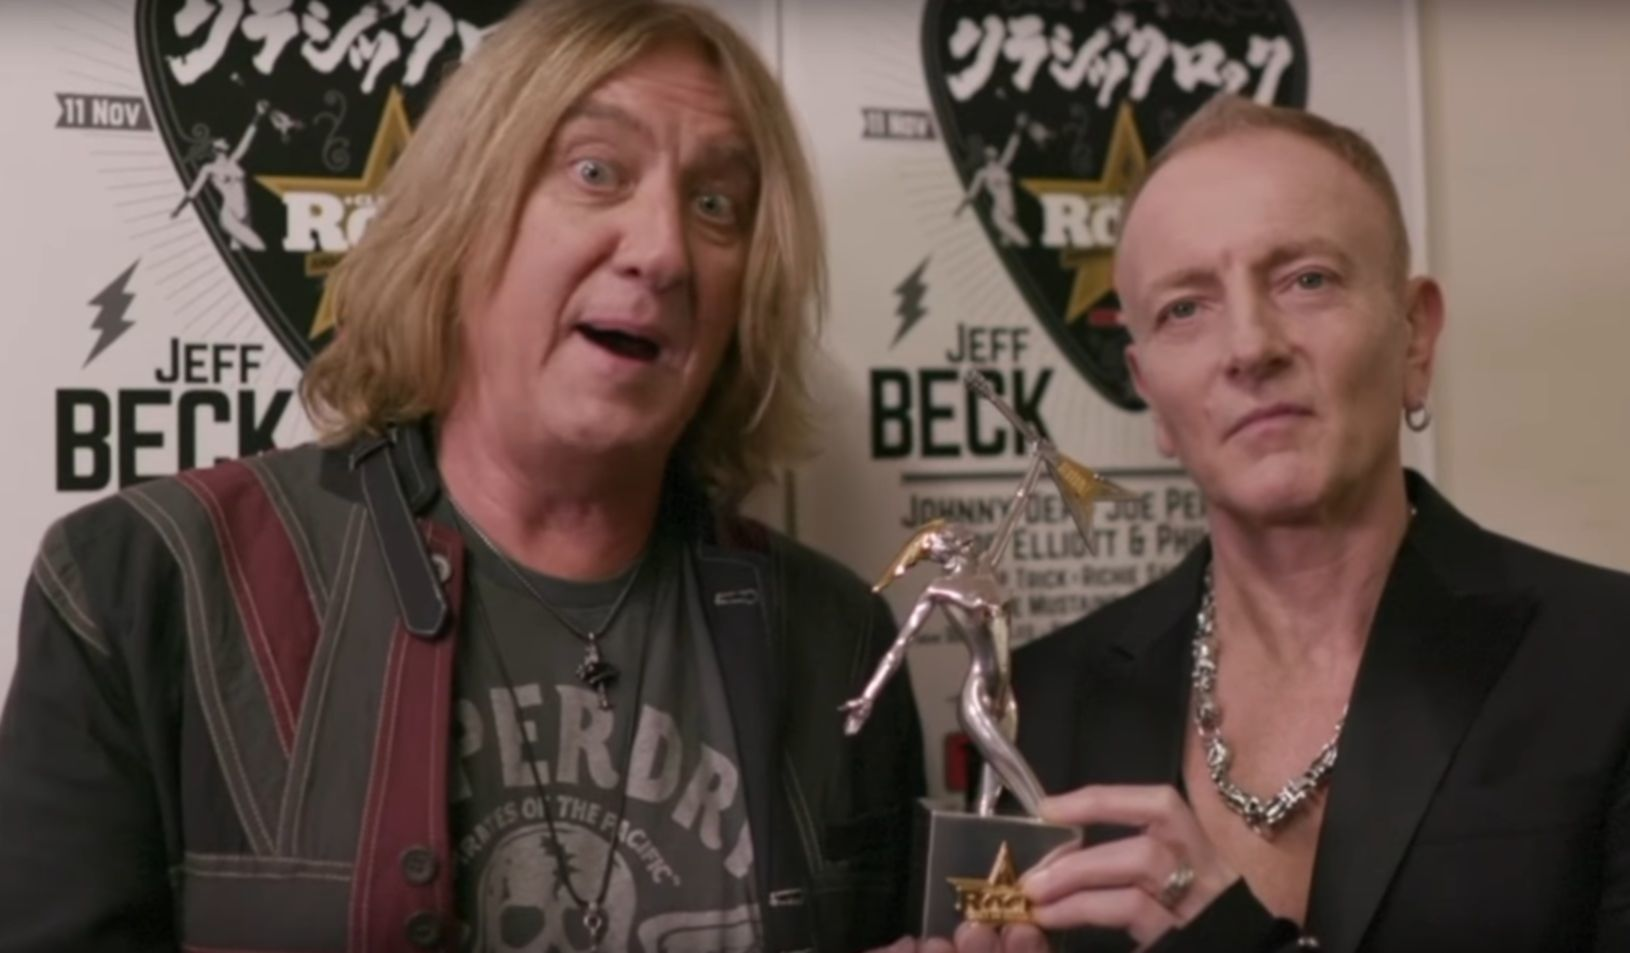 def-leppard-cr-awards